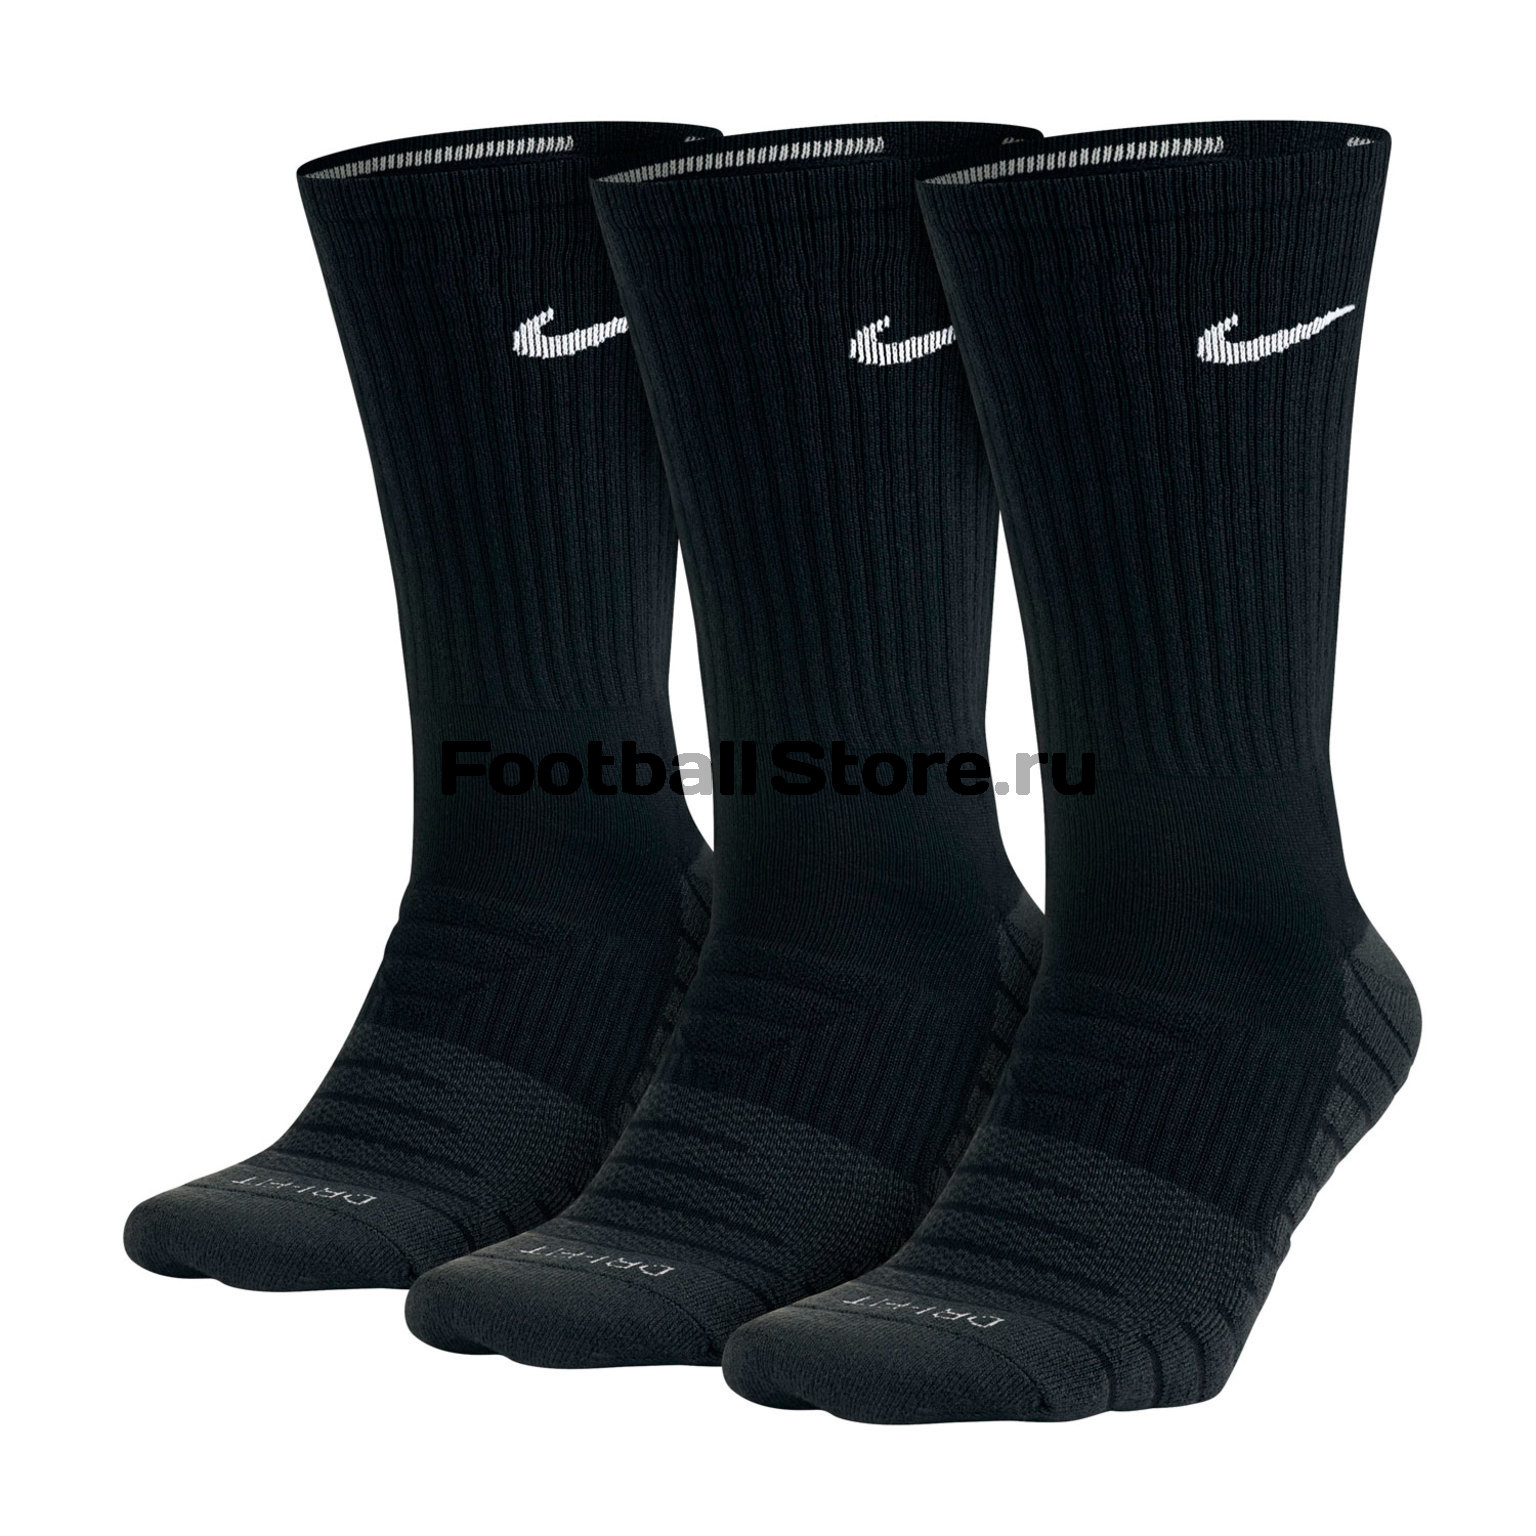 Комплект носков Nike 3PPK Dri-Fit Cushion Crew SX5547-010 комплект носков nike 3ppk cushion crew sx4700 901